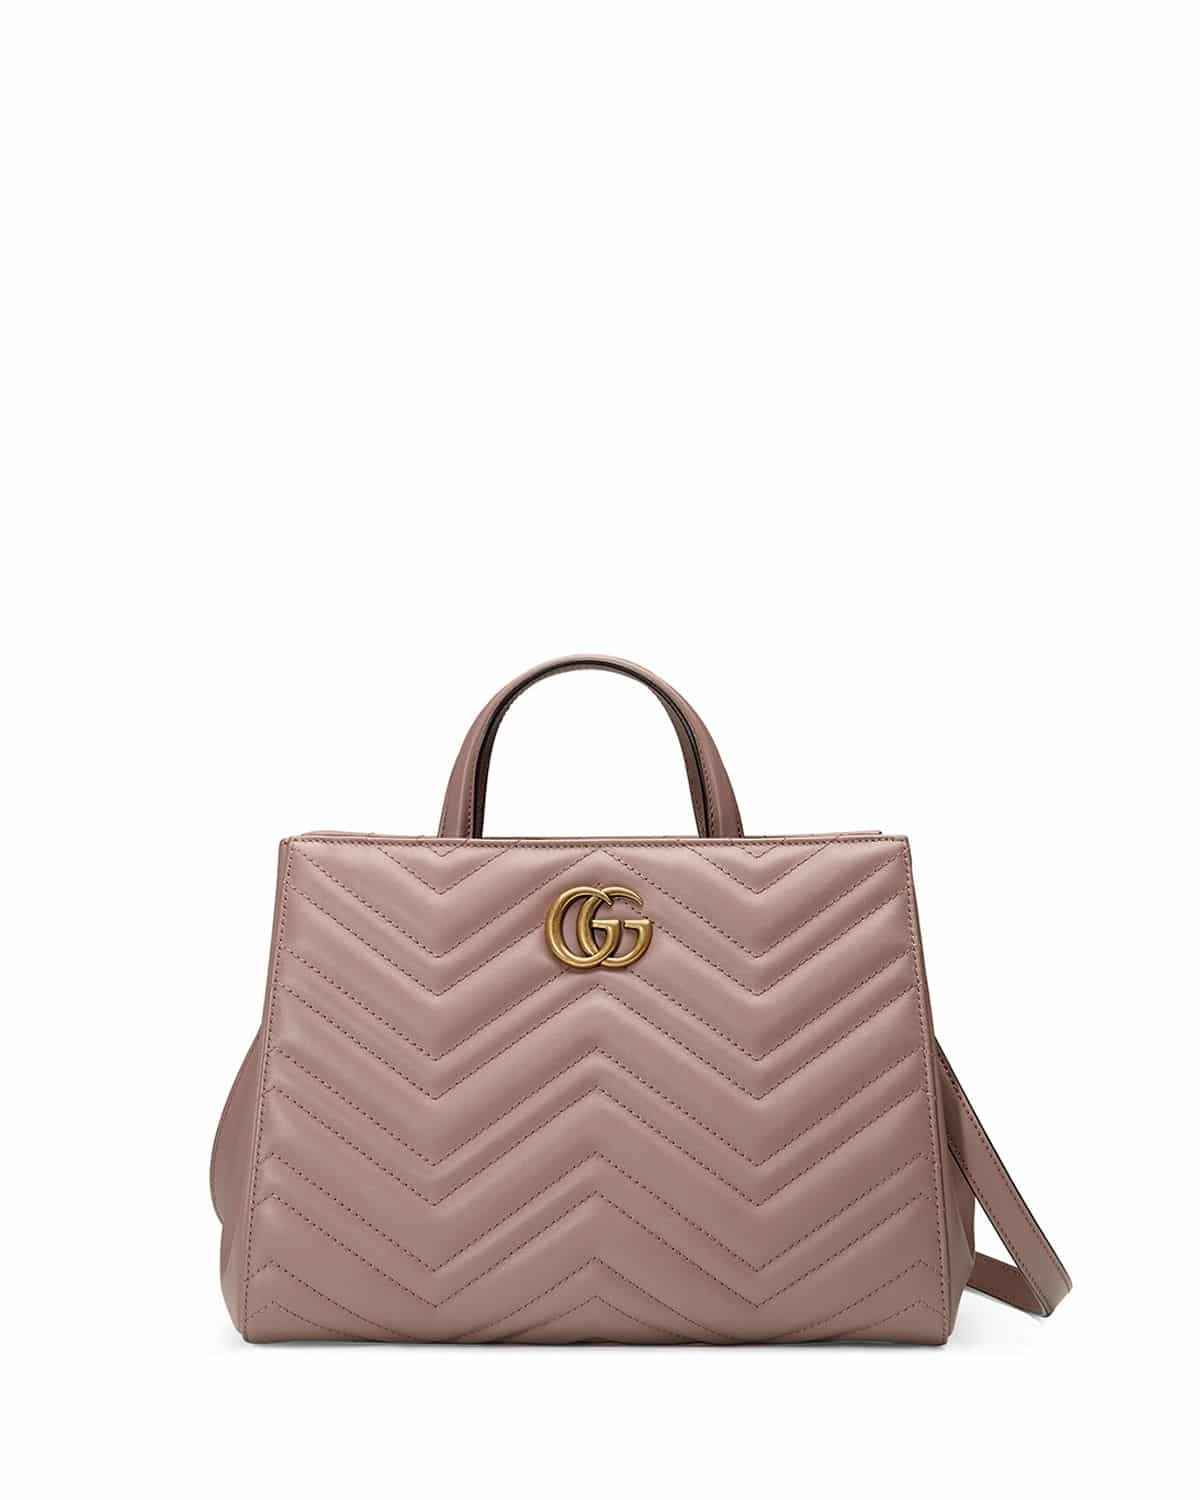 252cd78e09d702 Gucci Nude GG Marmont Small Matelasse Top-Handle Bag